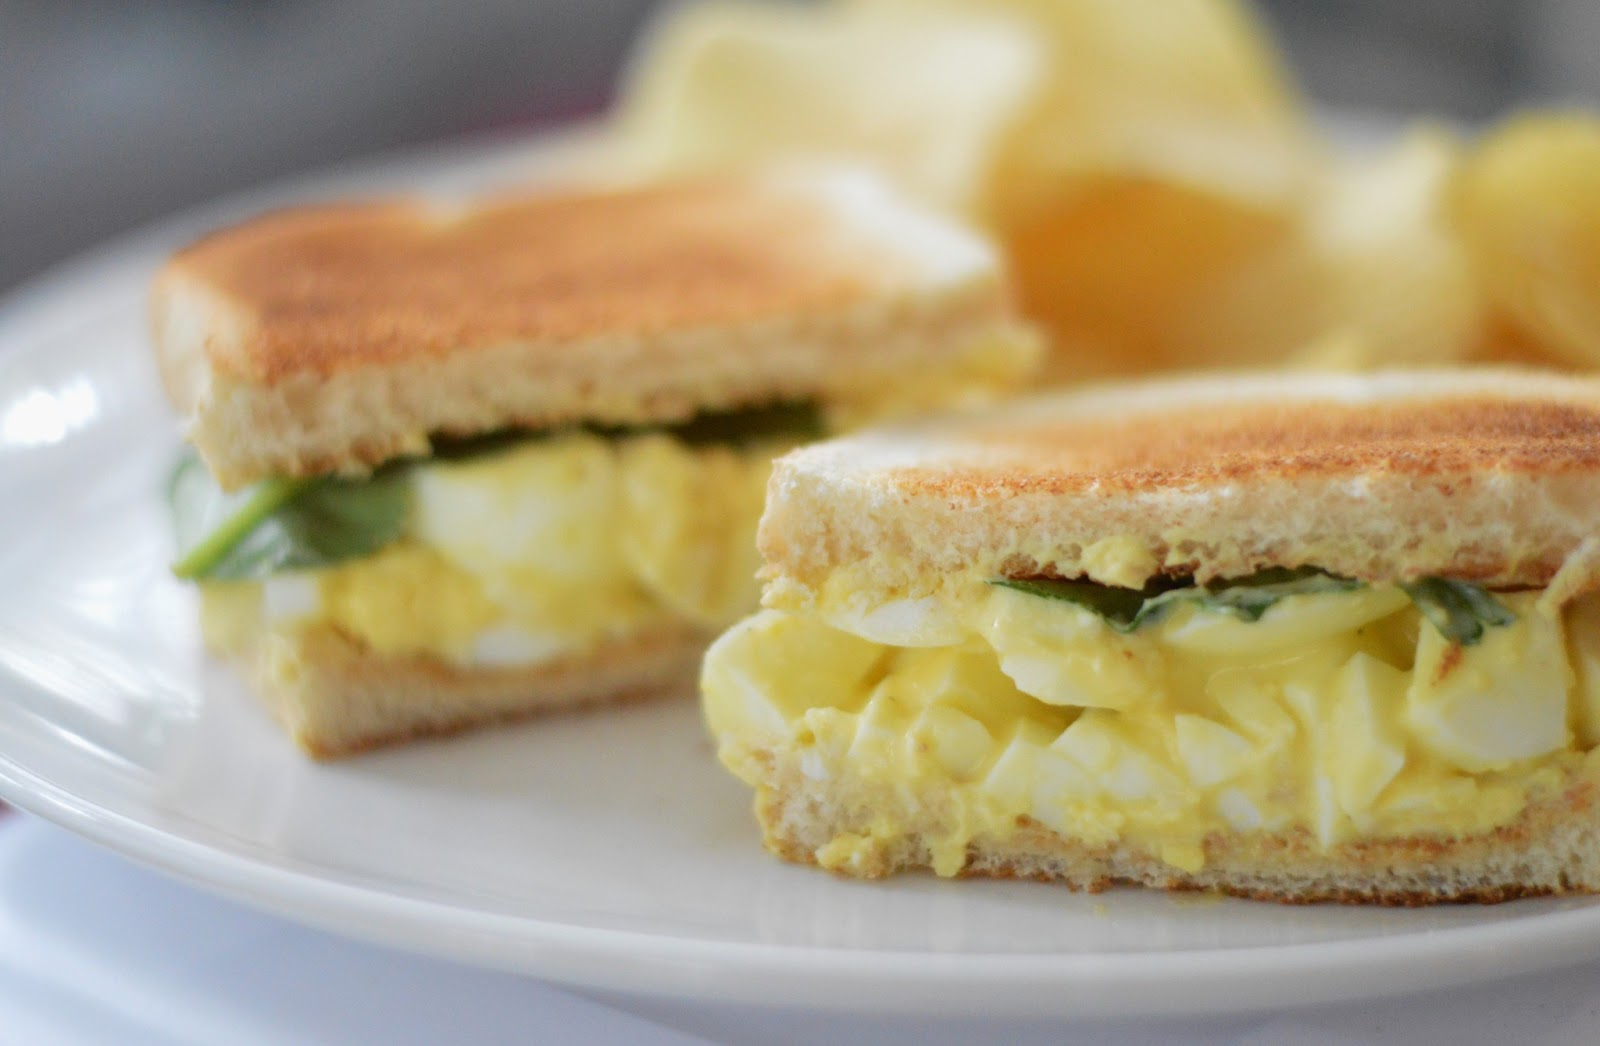 The Art of Comfort Baking: Easy Peasy Egg Salad